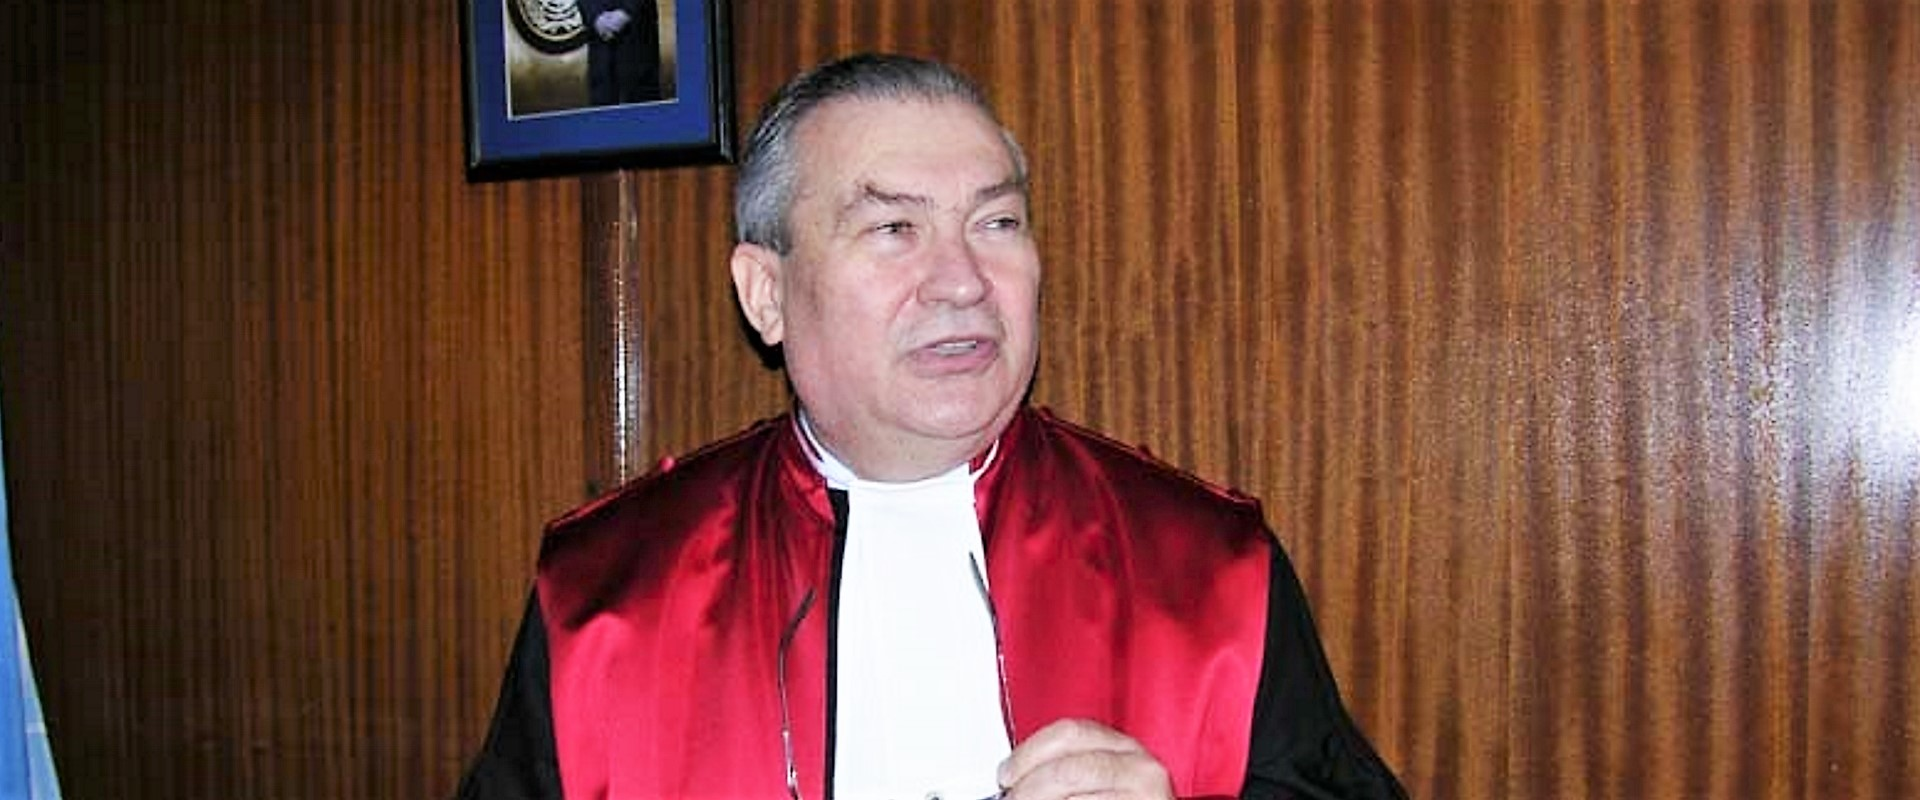 Hague court Turkish judge not reappointed due to'terrorism' conviction